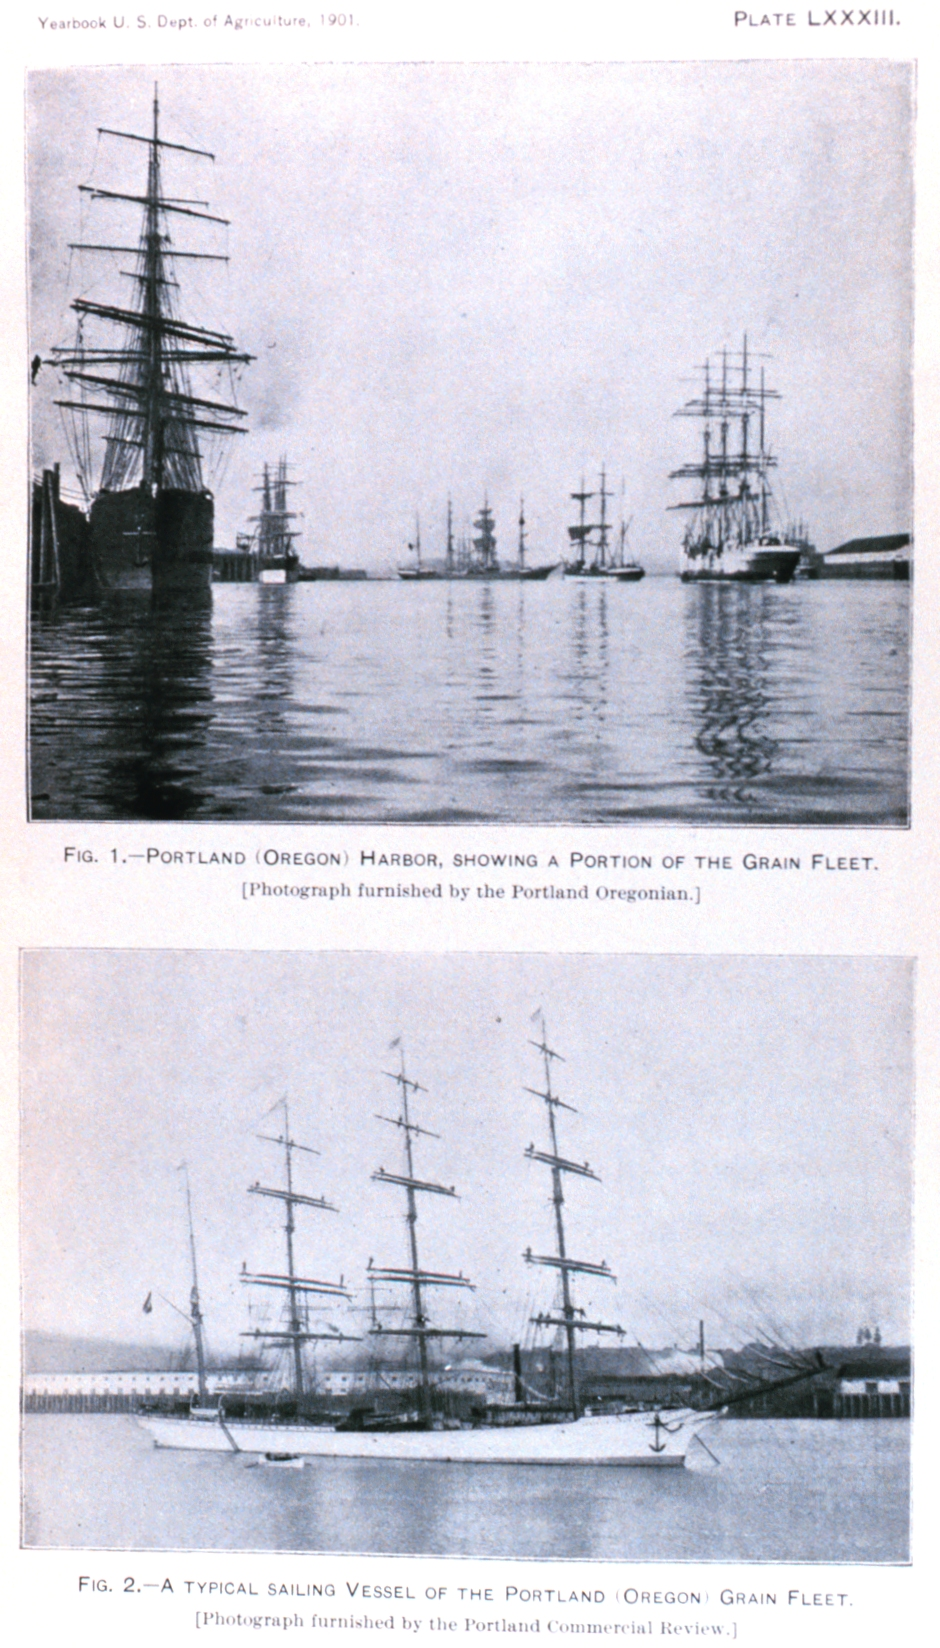 Portland, Oregon, waterfront.  In: 'Wheat Ports of the Pacific Coast' by Edwin  S. Holmes, Jr.  Published in: Yearbook of the United States Department of Agric ulture 1901.  Plate LXXXIII, p. 570. Library Call Number S21 .A2 .